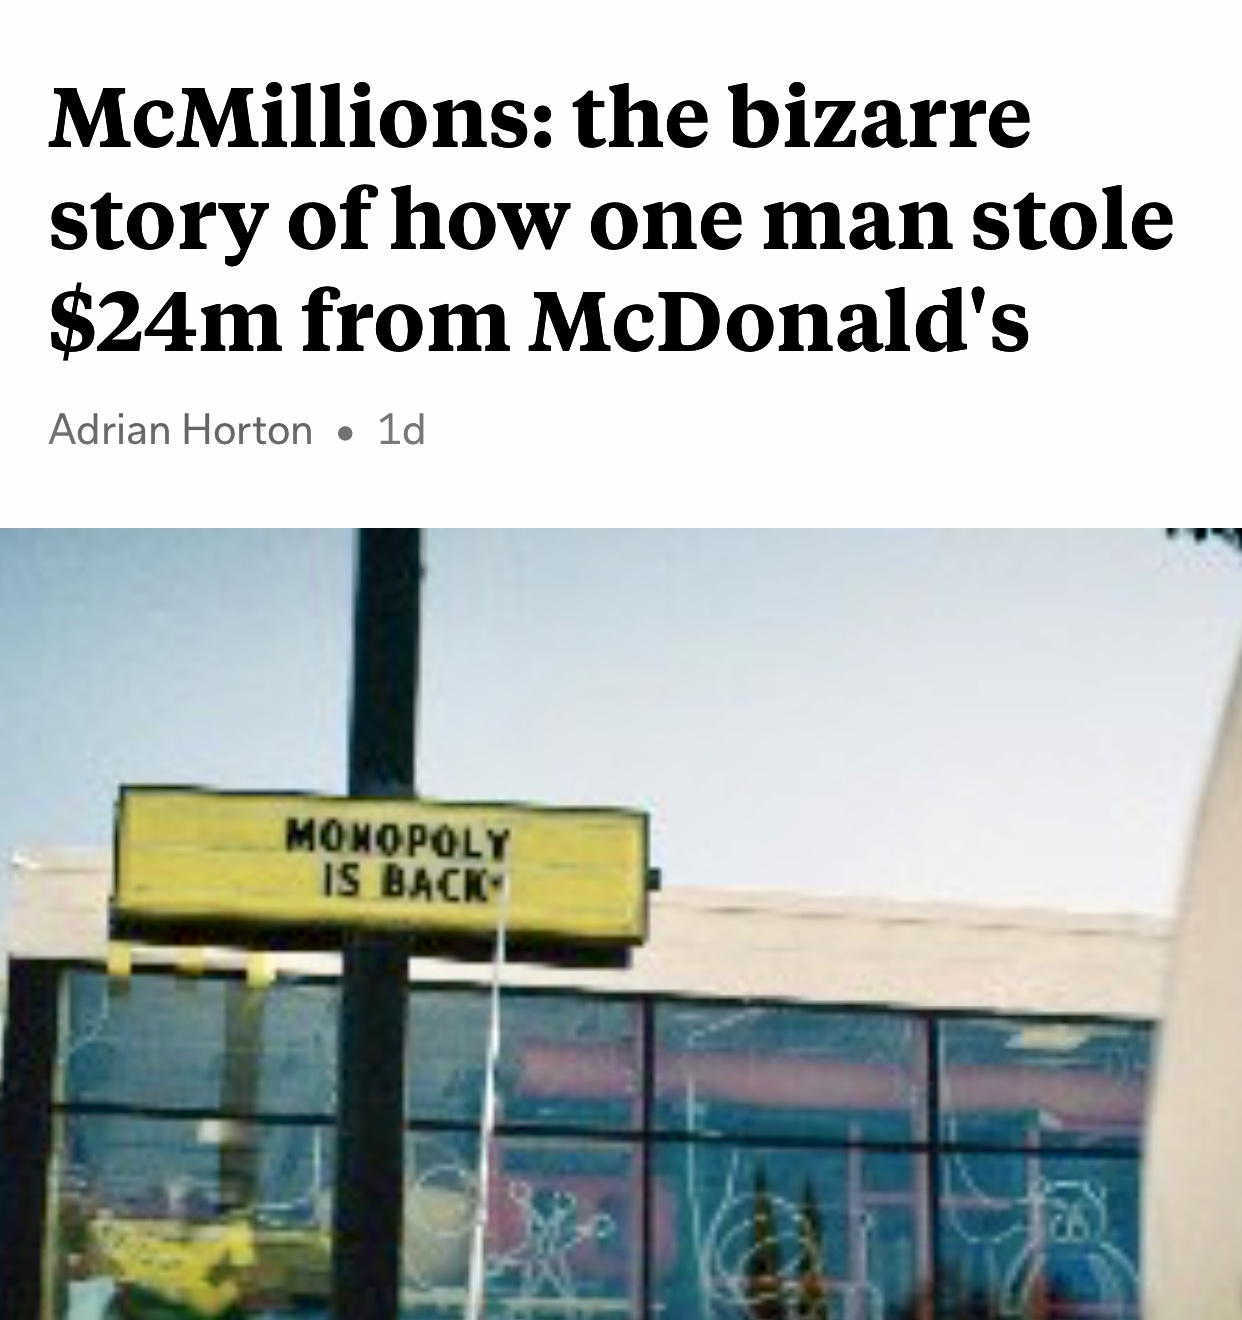 McMillions: How one man stole $24m from McDonald's